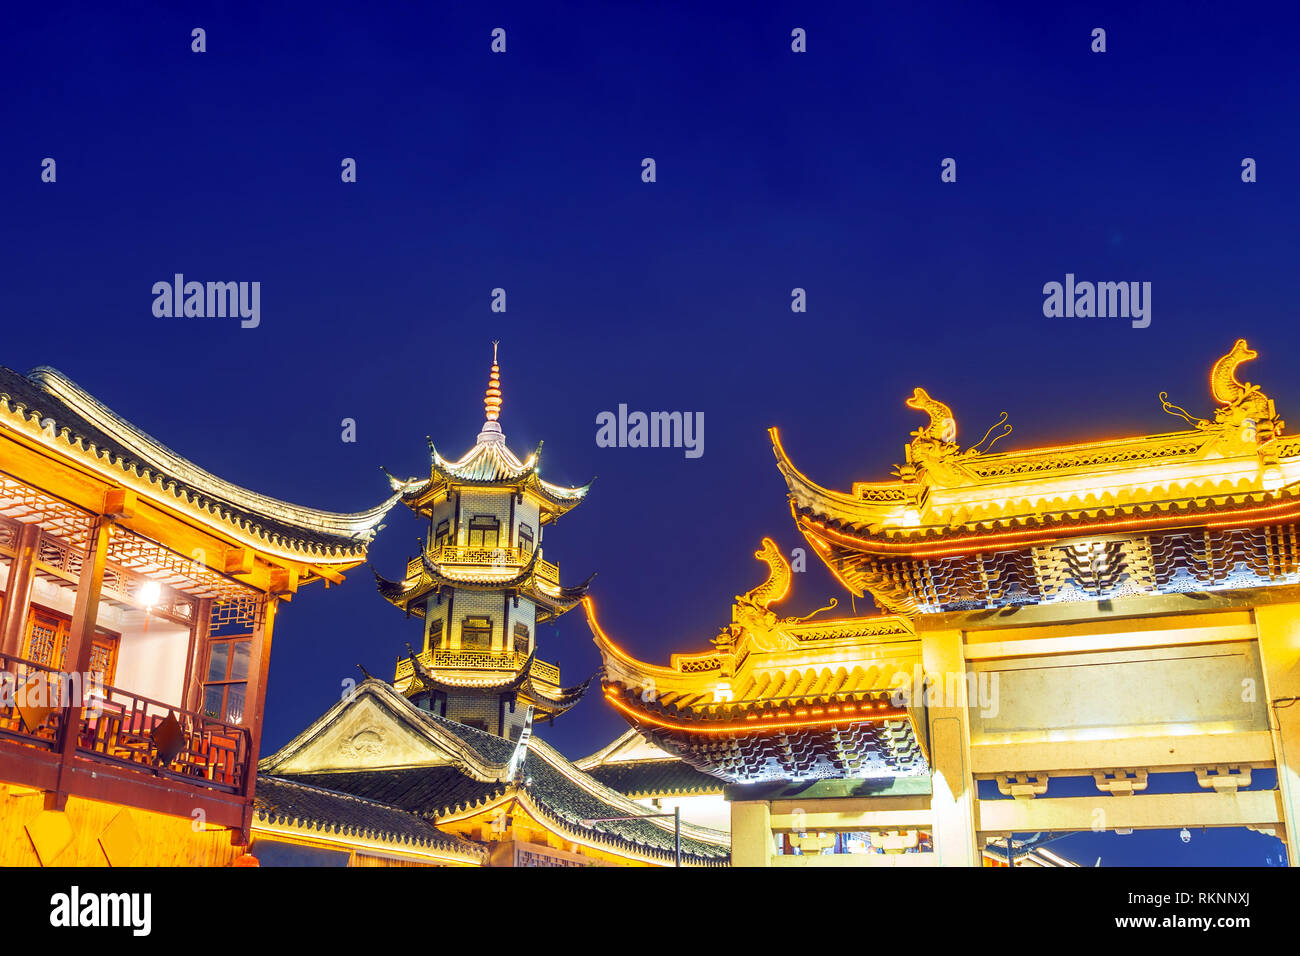 Zhouzhuang, Chinese ethnic style buildings and towers Stock Photo